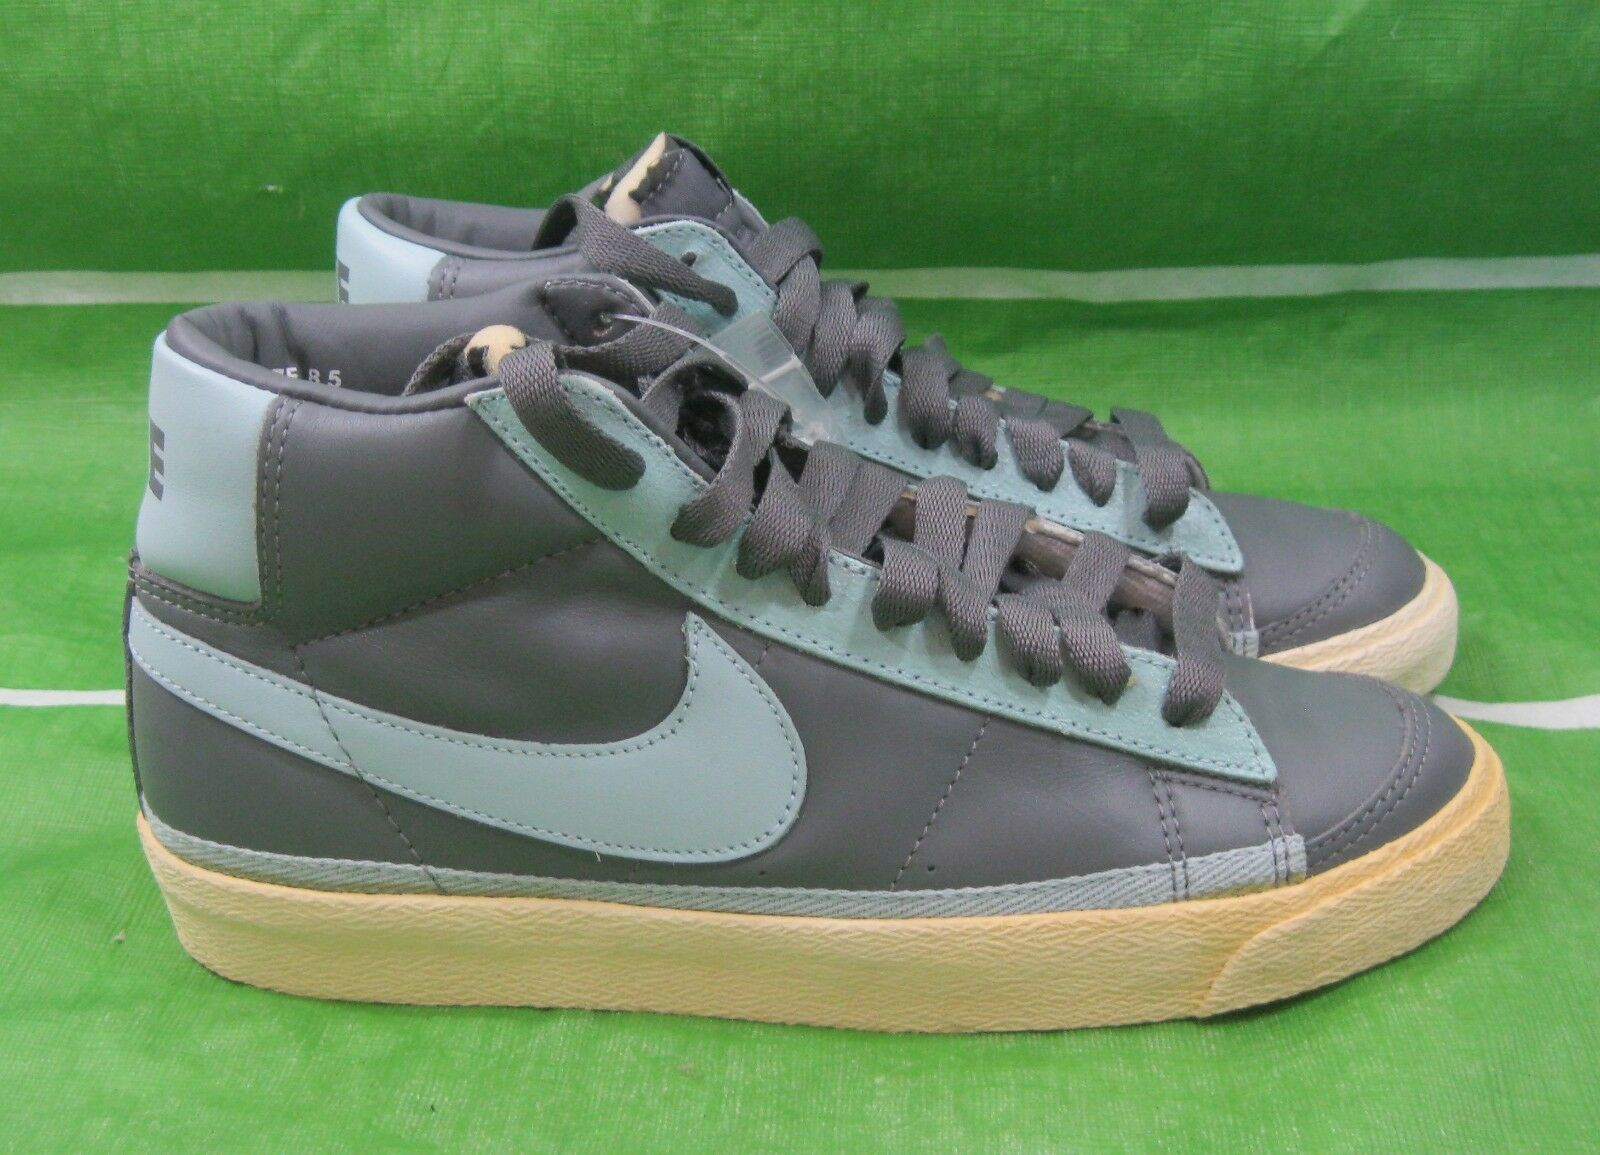 New Damens Light Nike Blazer Mid 306499-001 Light Damens Graphite/Cloud Grau Größe 8.5 4a9c8c